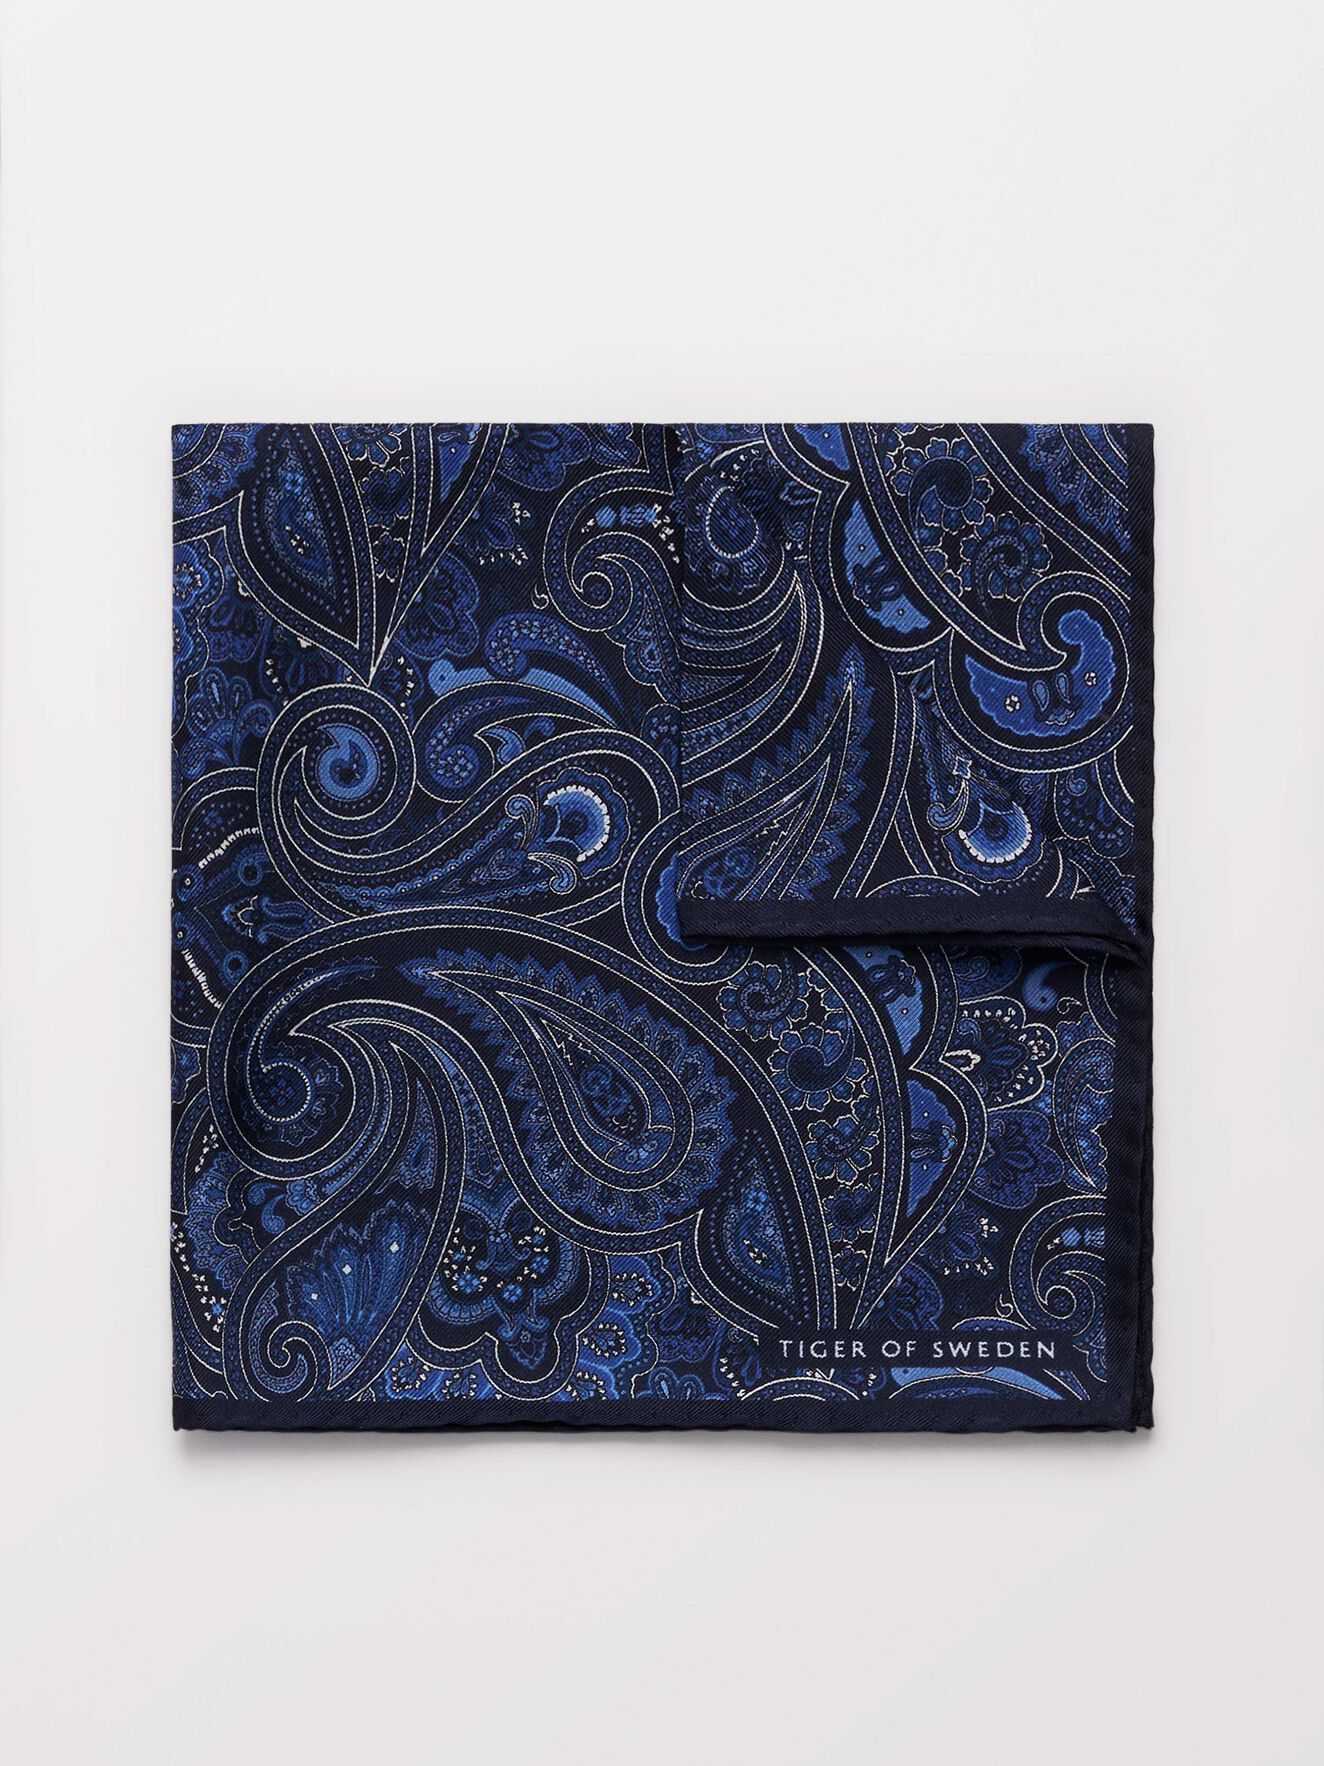 Pais Handkerchief in Blue from Tiger of Sweden